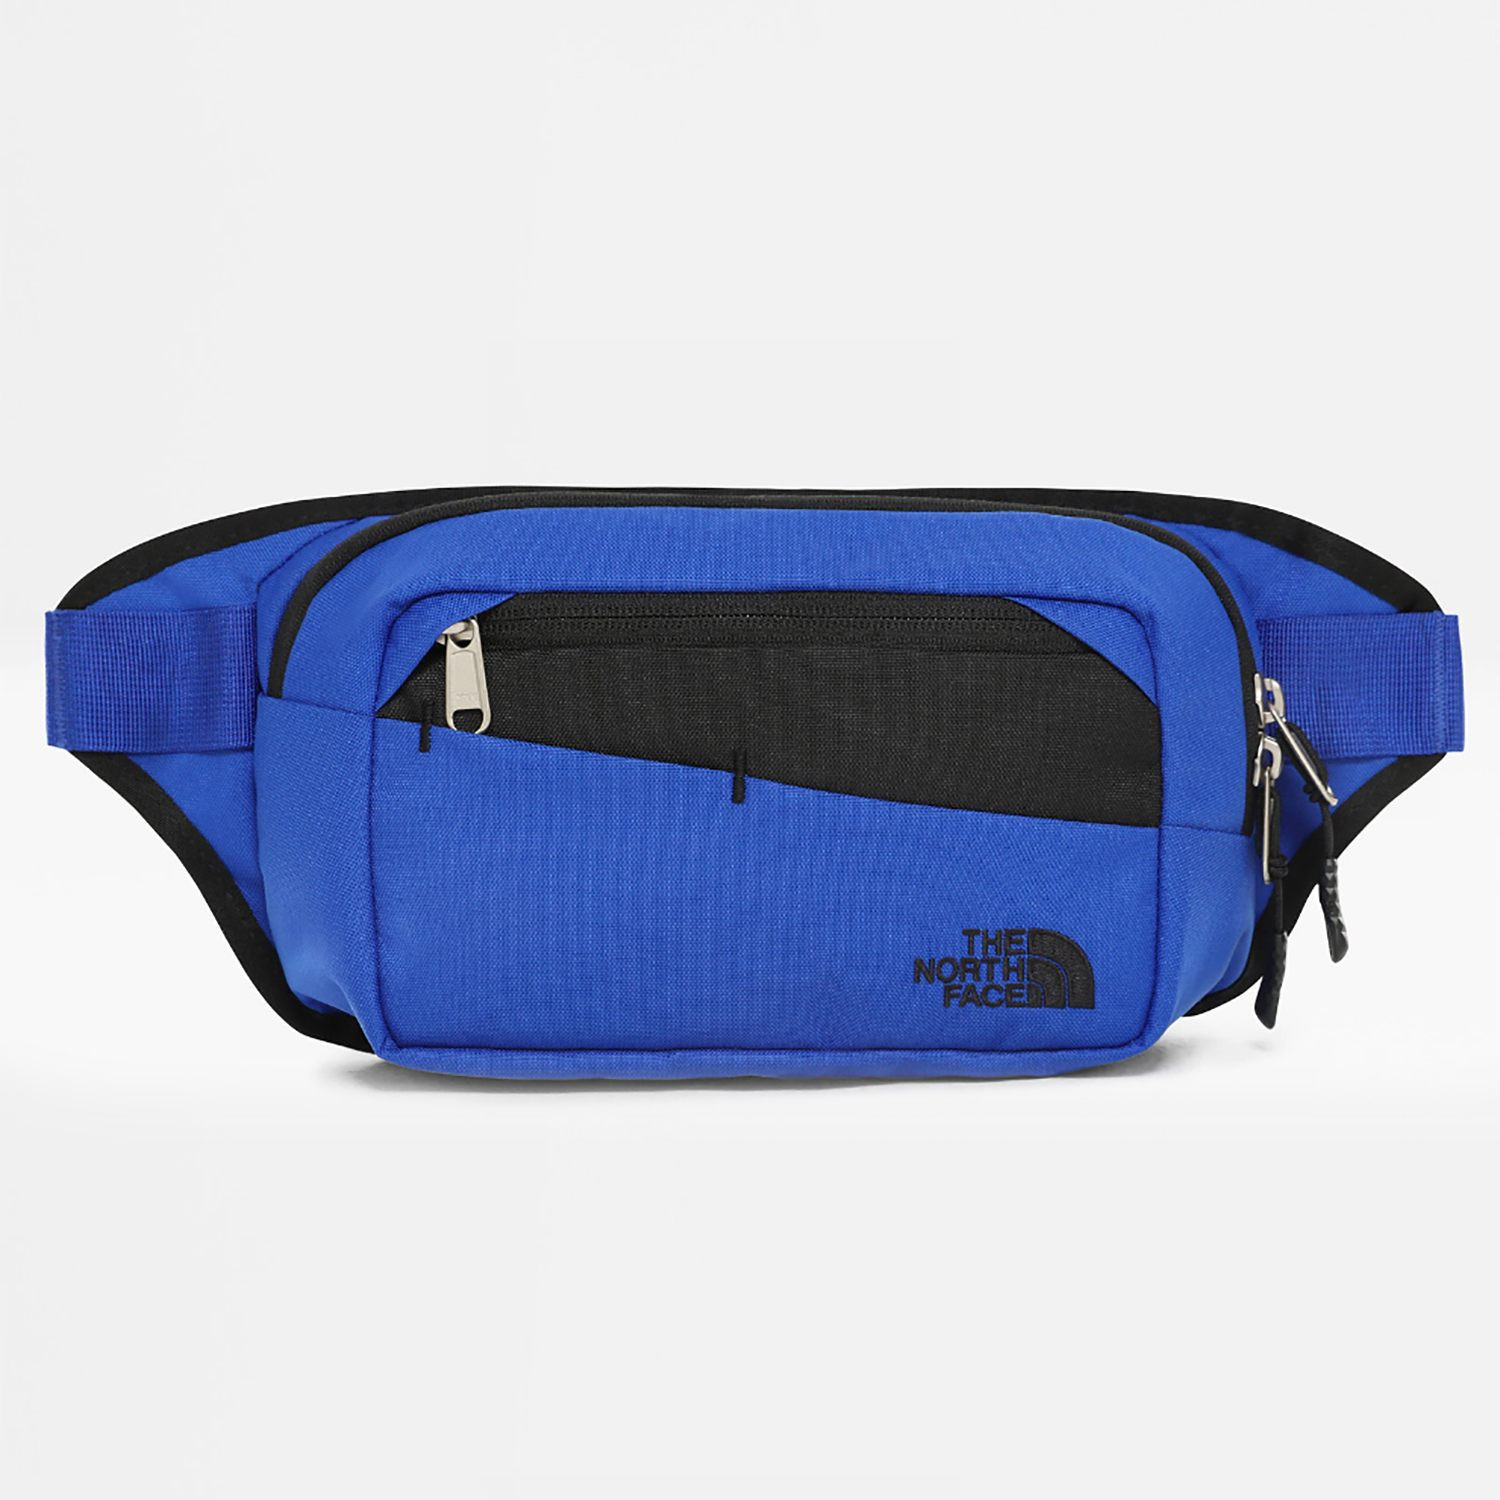 THE NORTH FACE BOZER HIP PACK II (9000036573_41113)